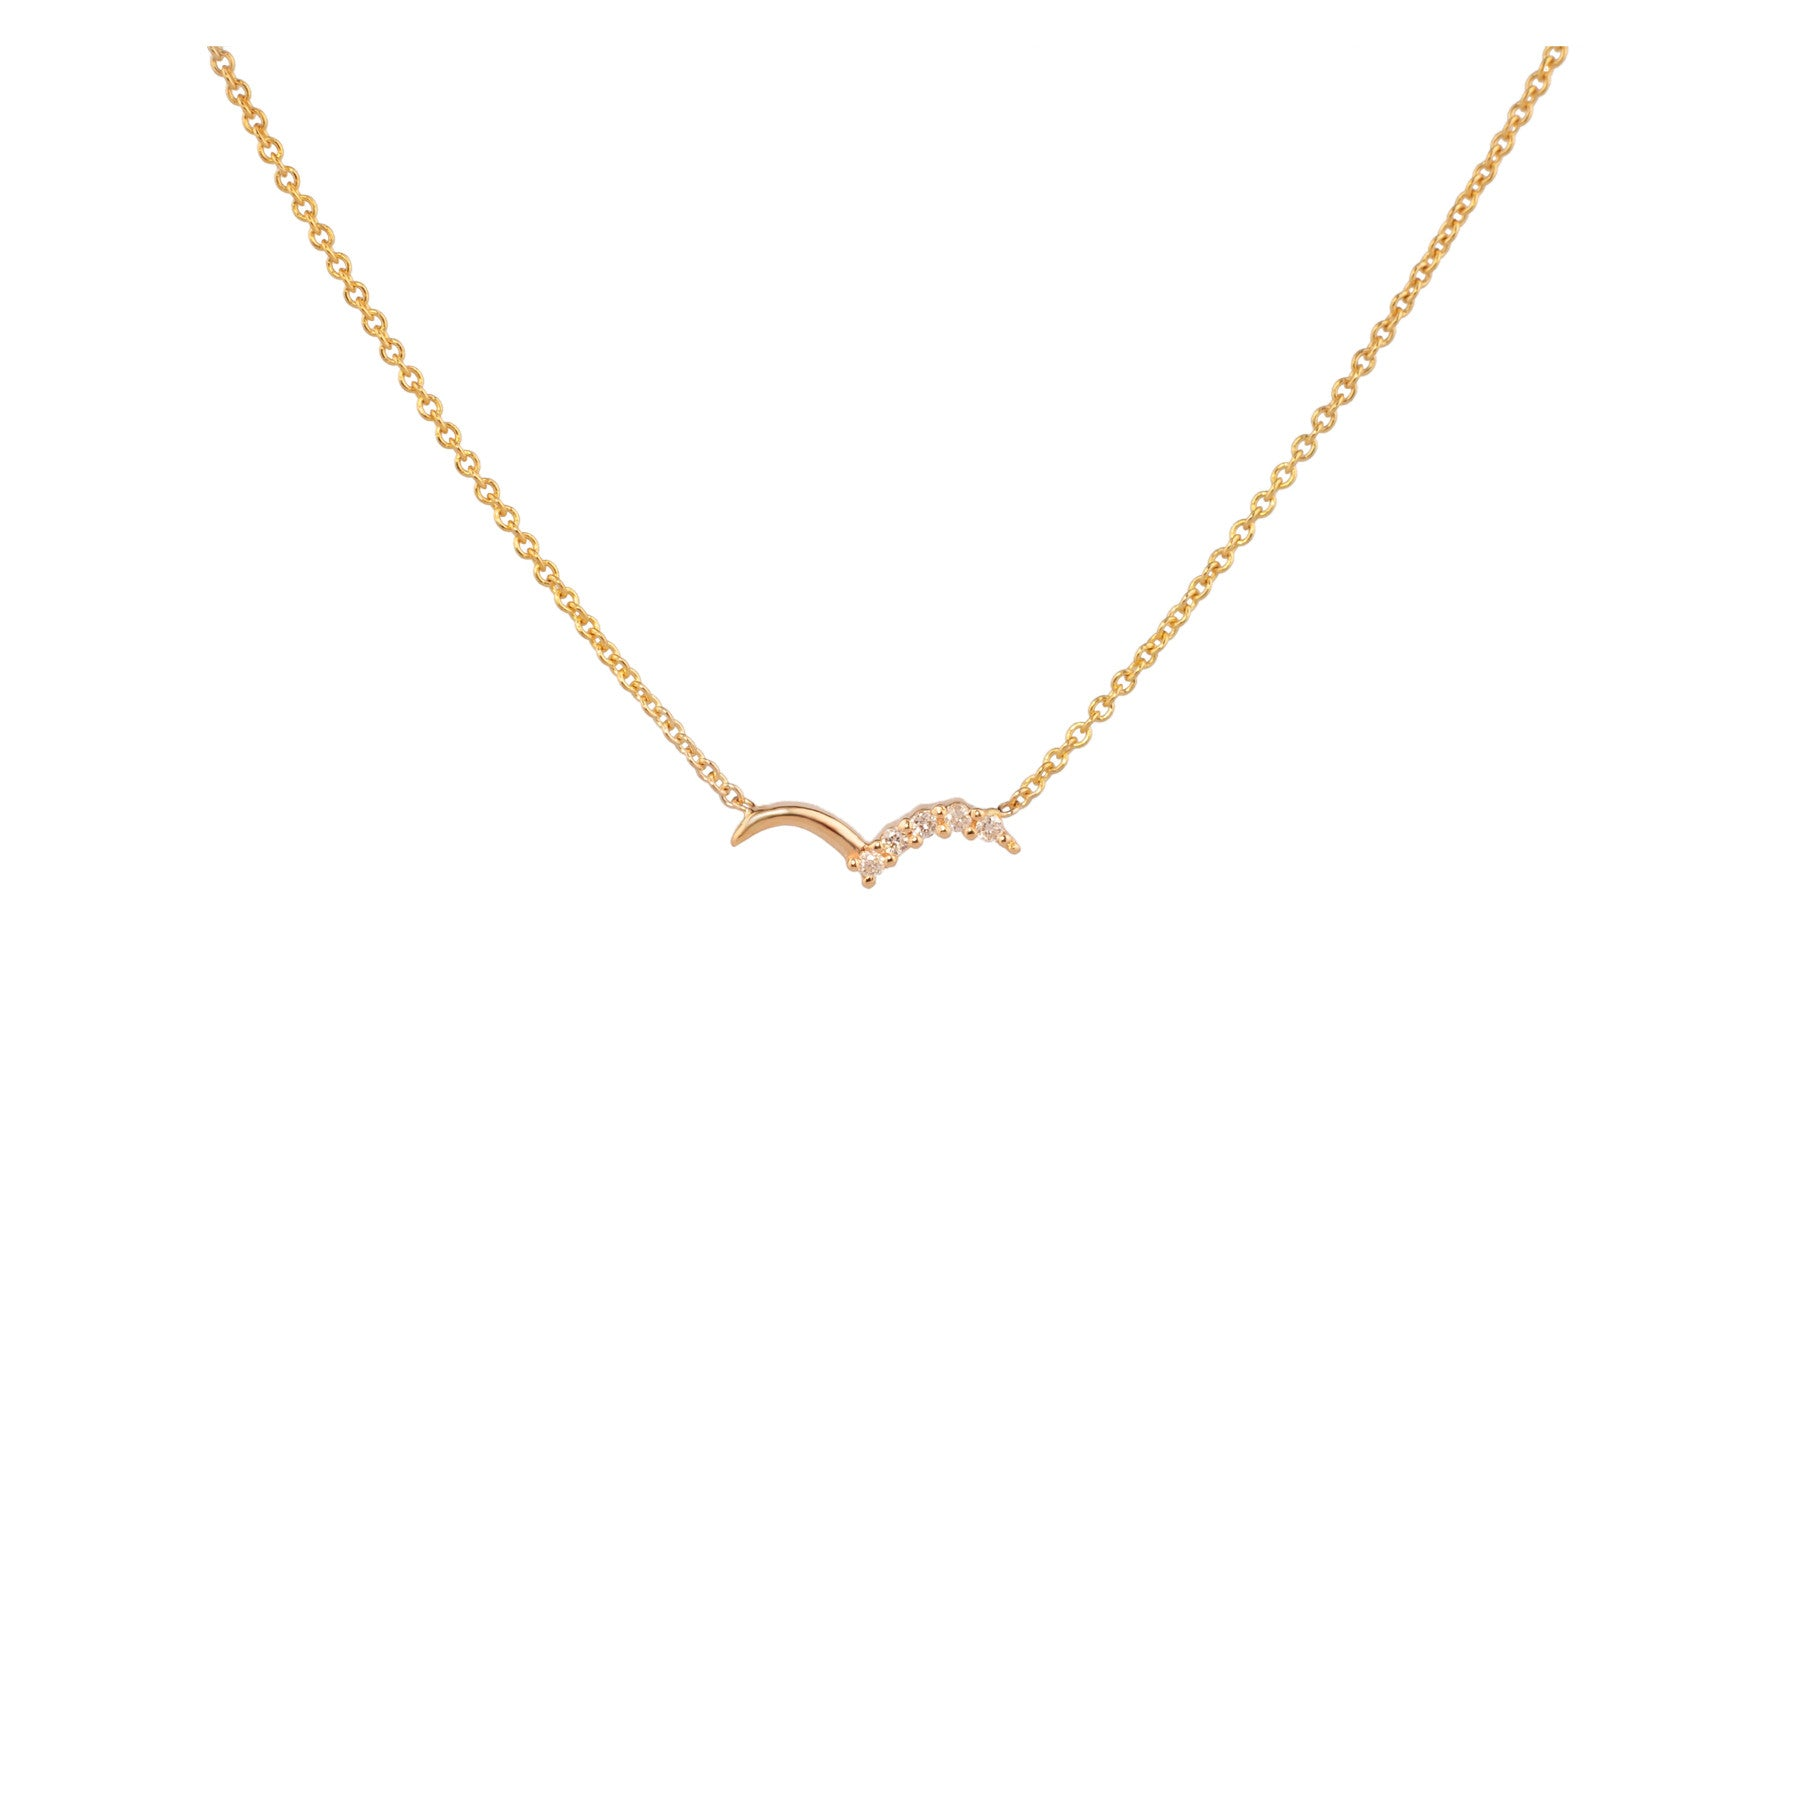 LITTLE WING NECKLACE WITH DIAMOND PAVÉ